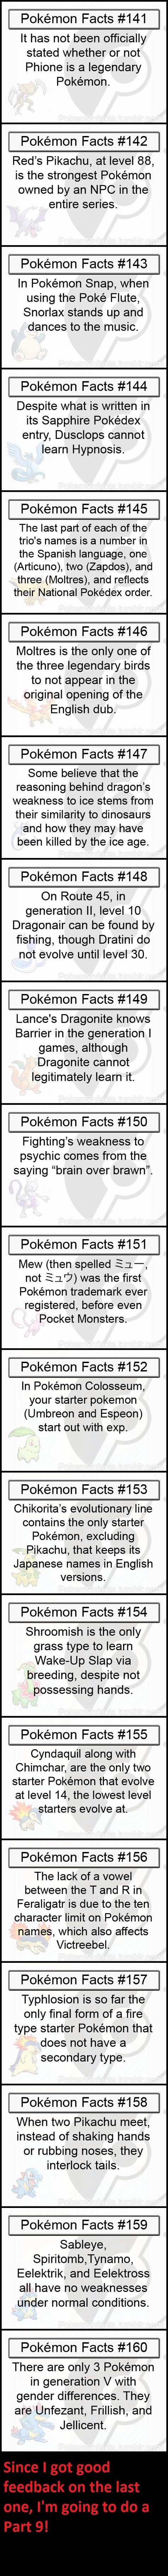 Pokemon Facts. Fact 159 is outdated now thanks to Fairy, but still interesting.